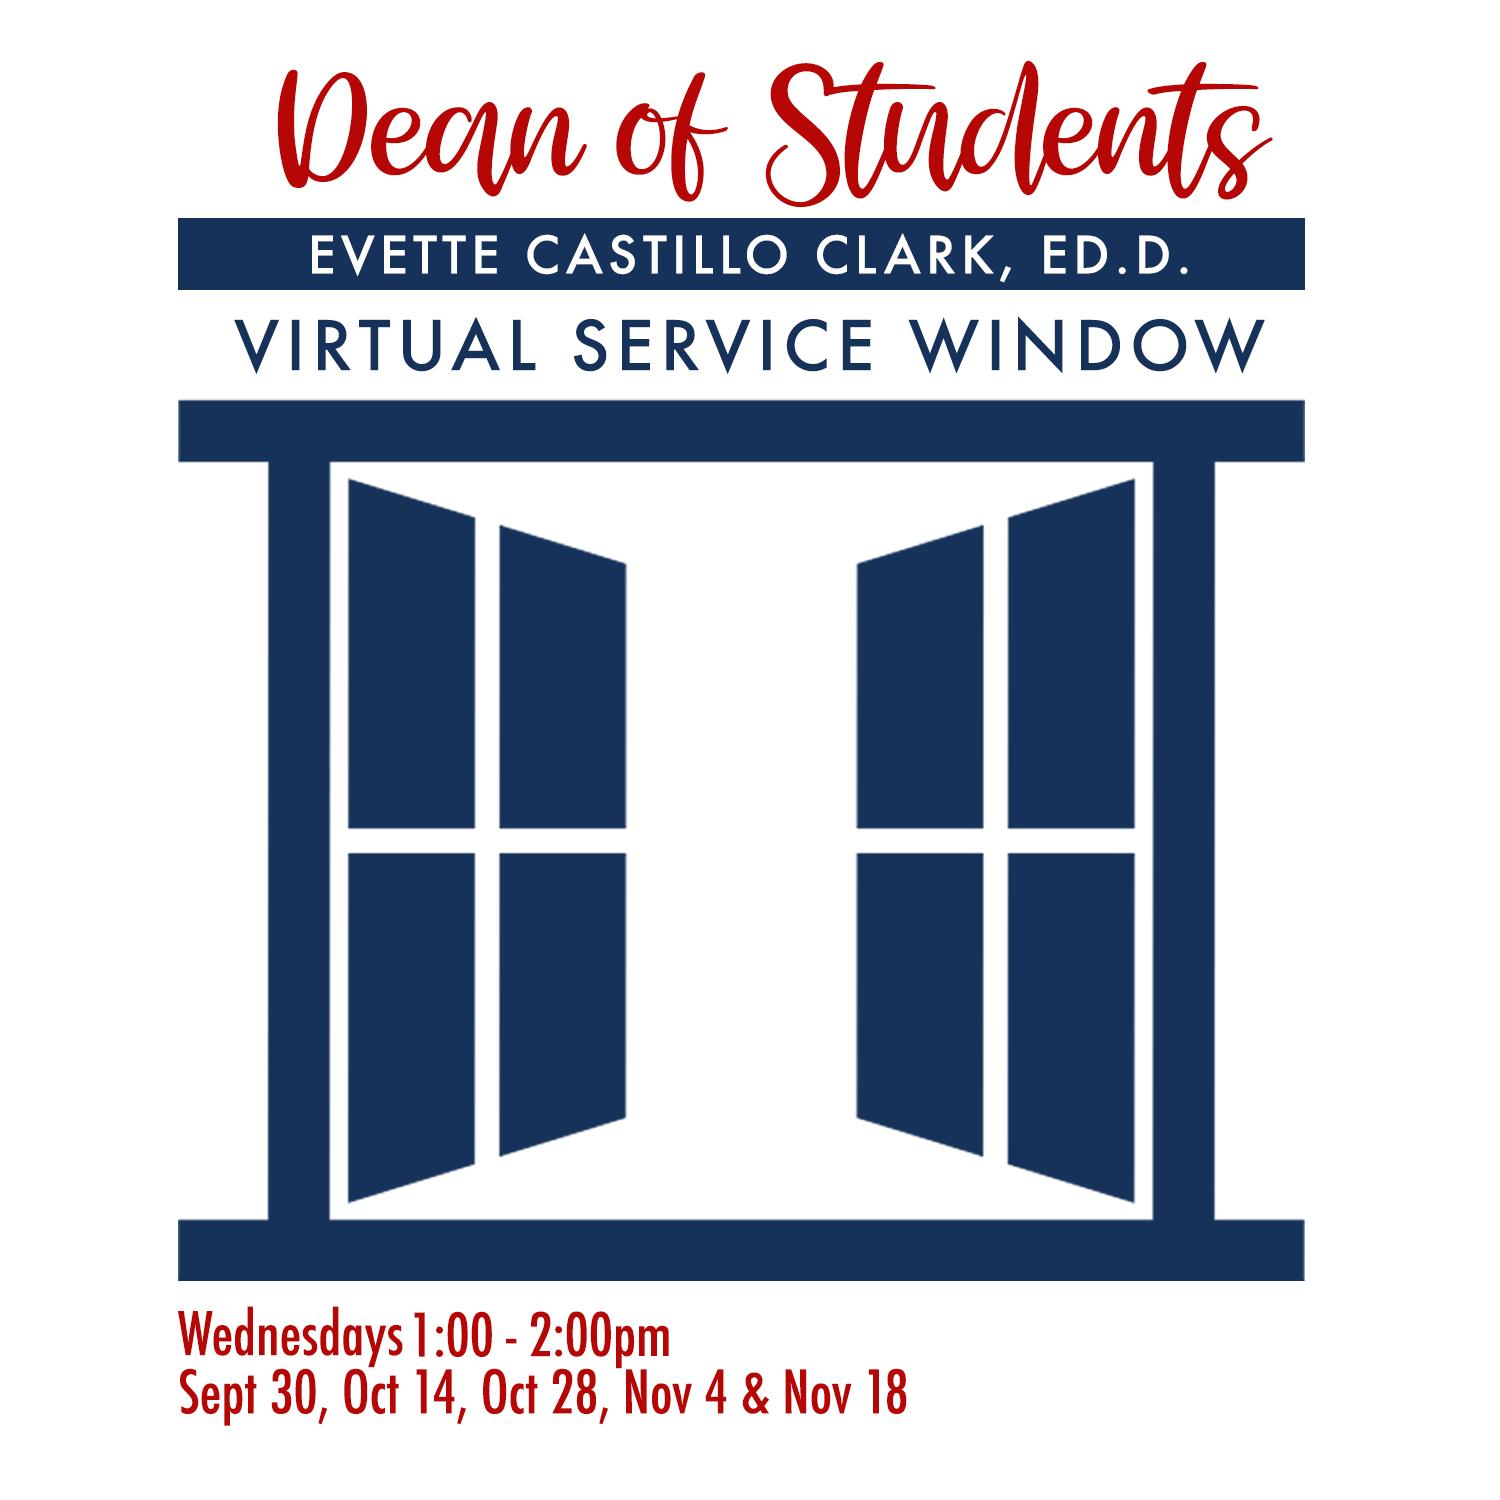 Dean of Student Virtual Window